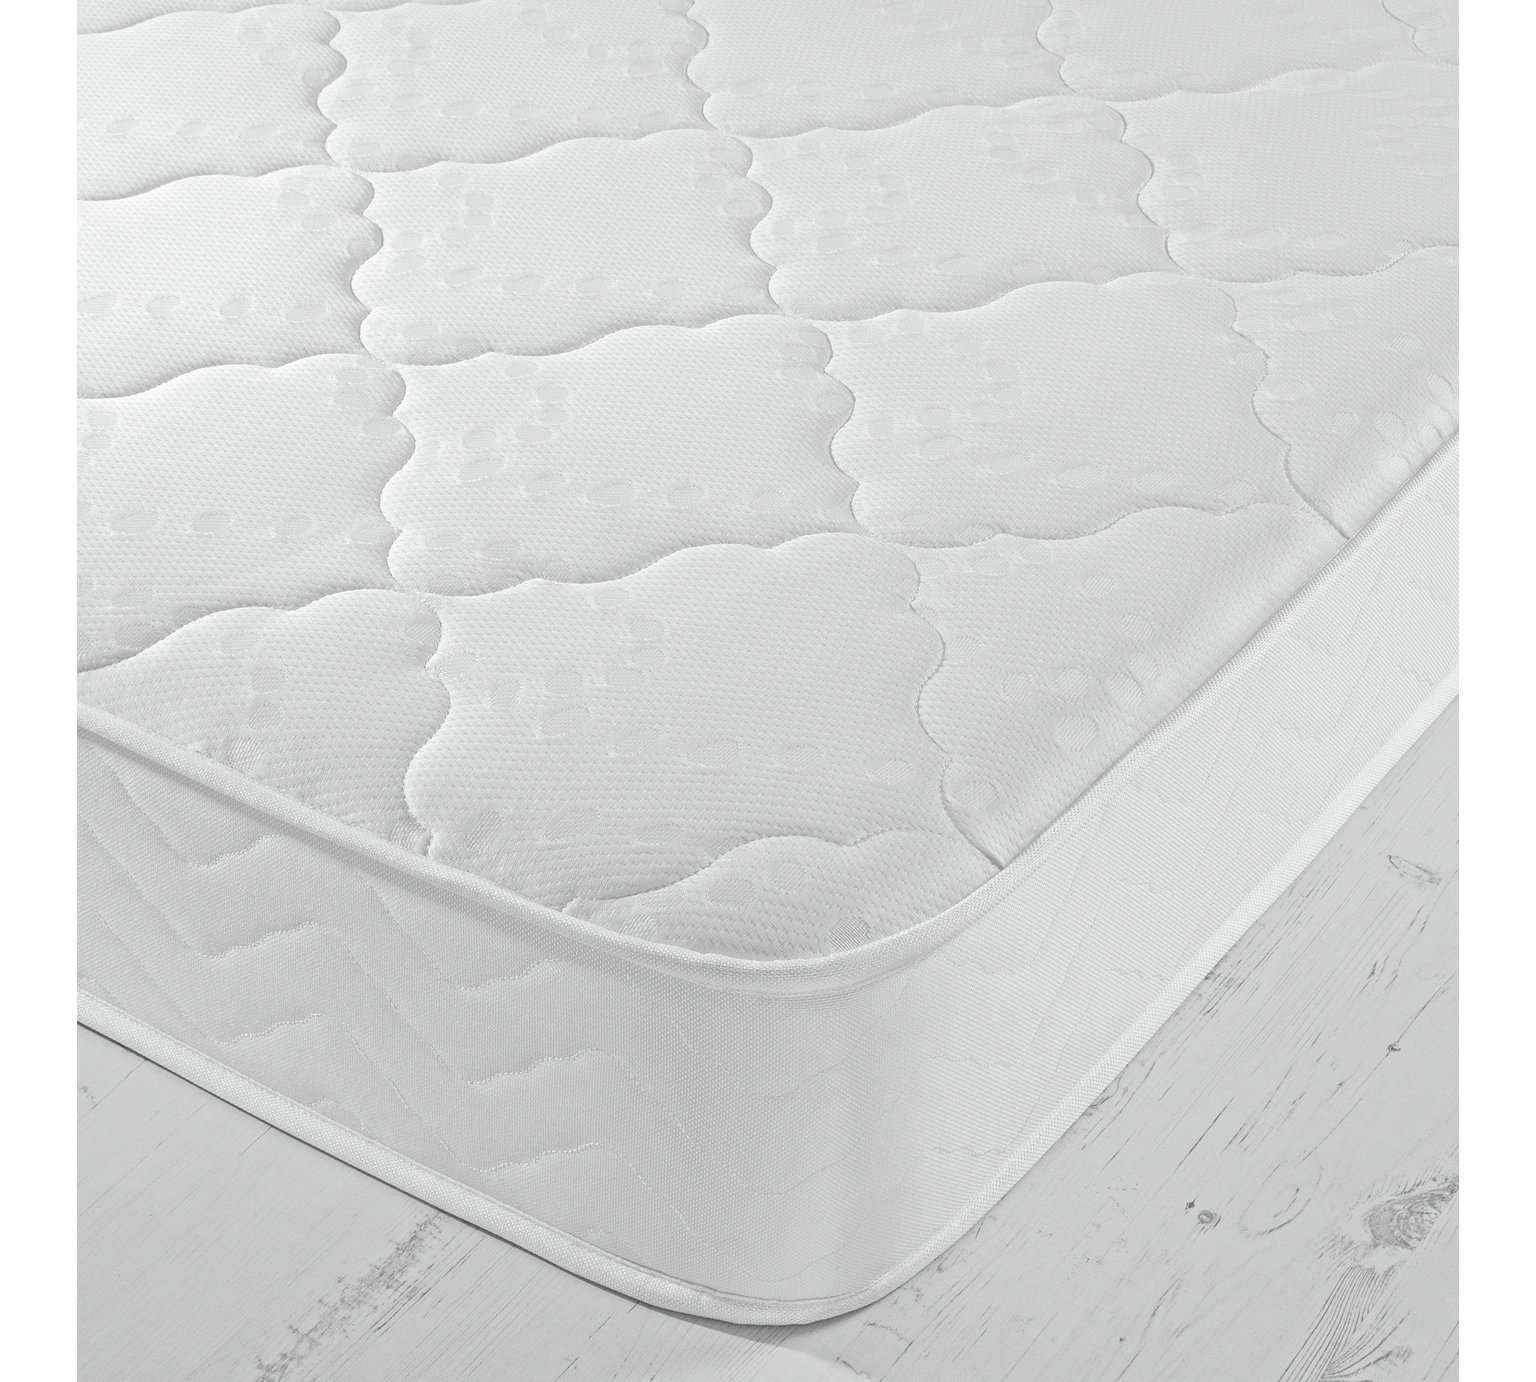 Airsprung Sleepwalk Memory Foam Rolled Single Mattress